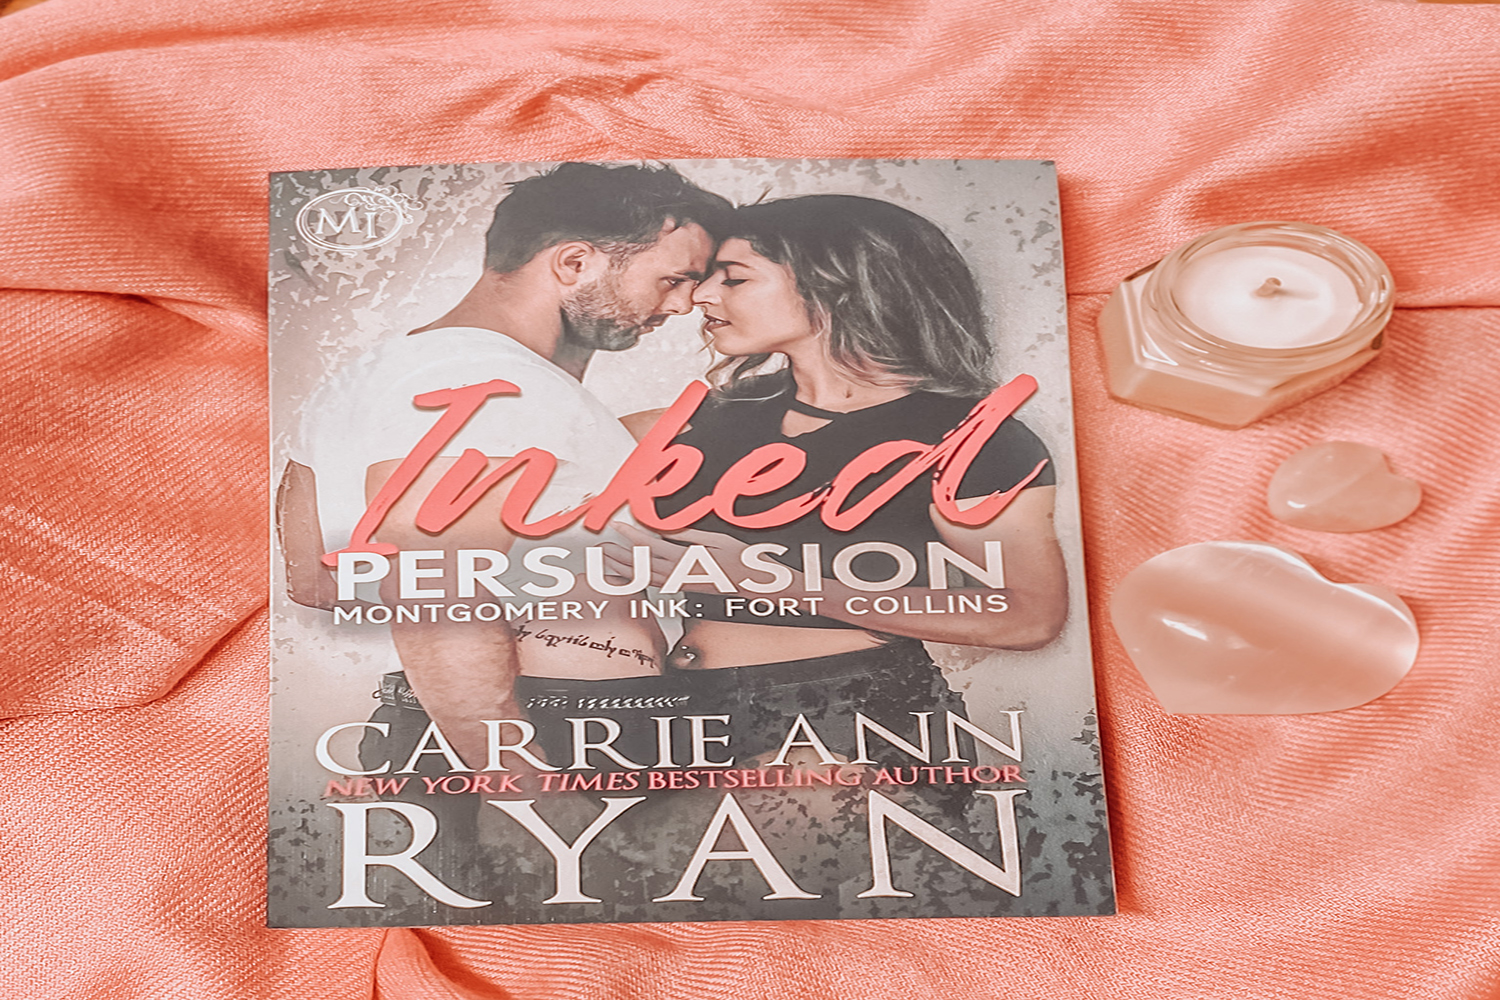 Inked Persuasion by Carrie Ann Ryan